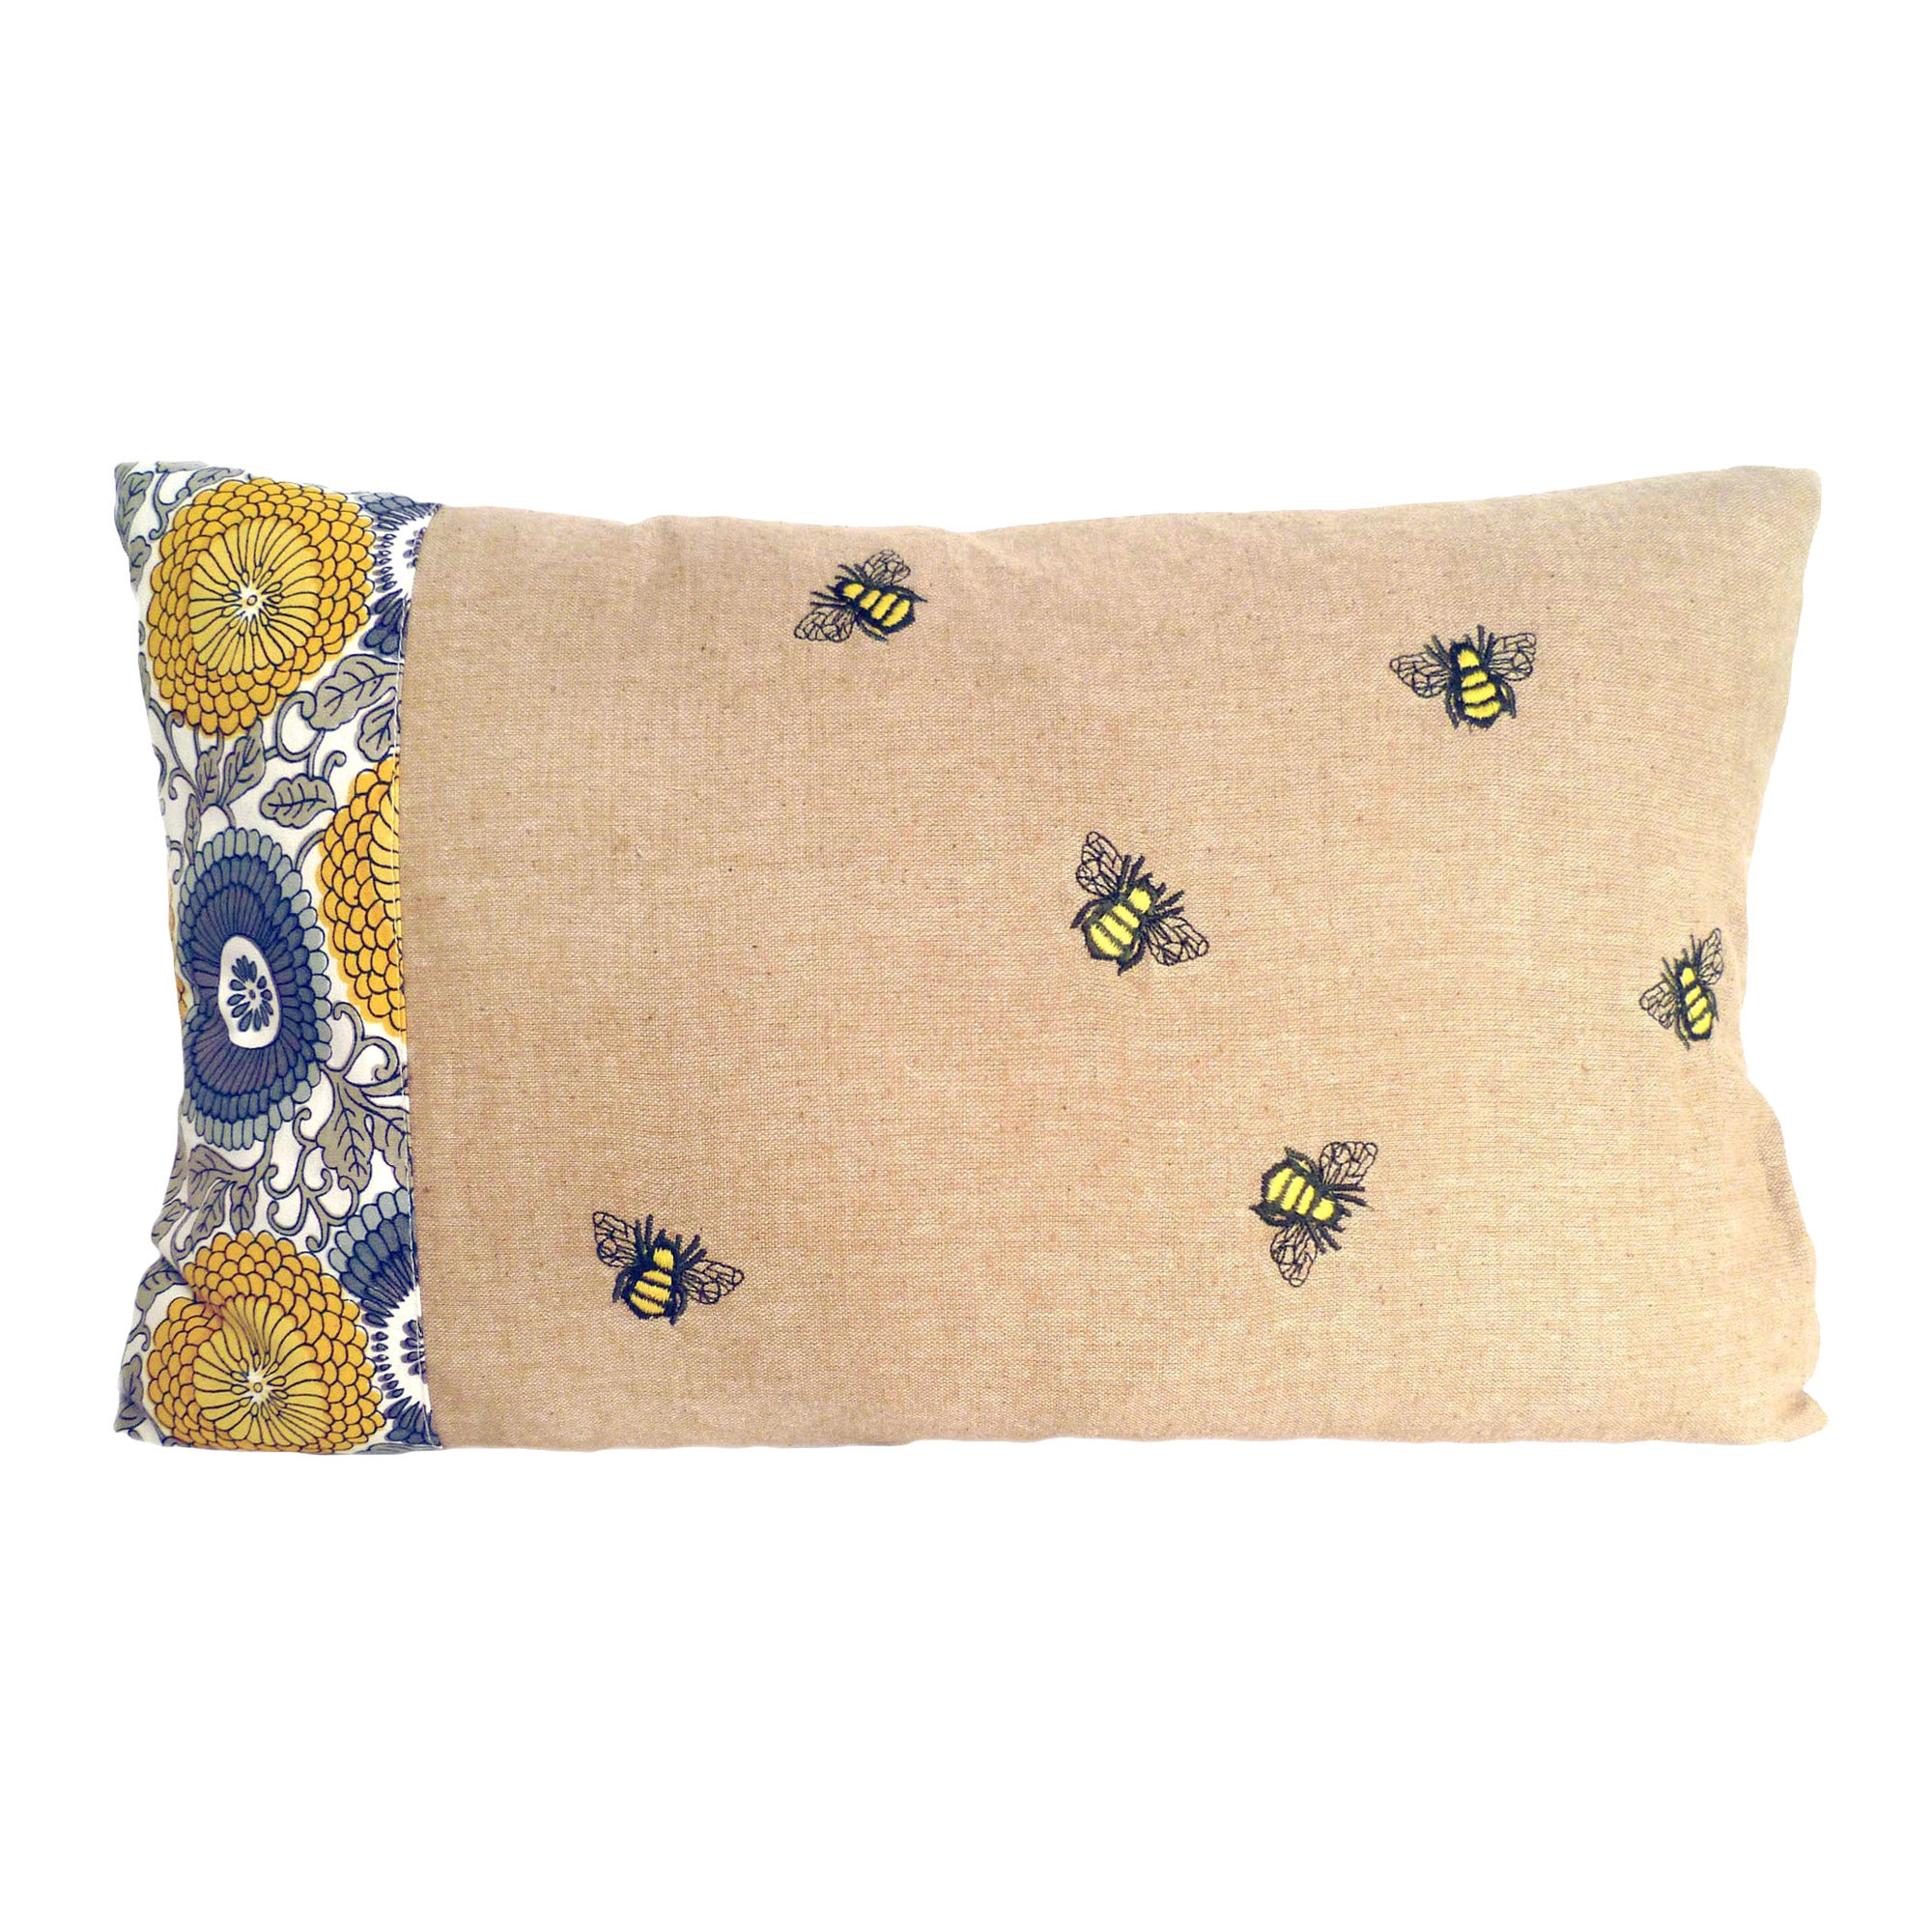 Honey Bees Cushion